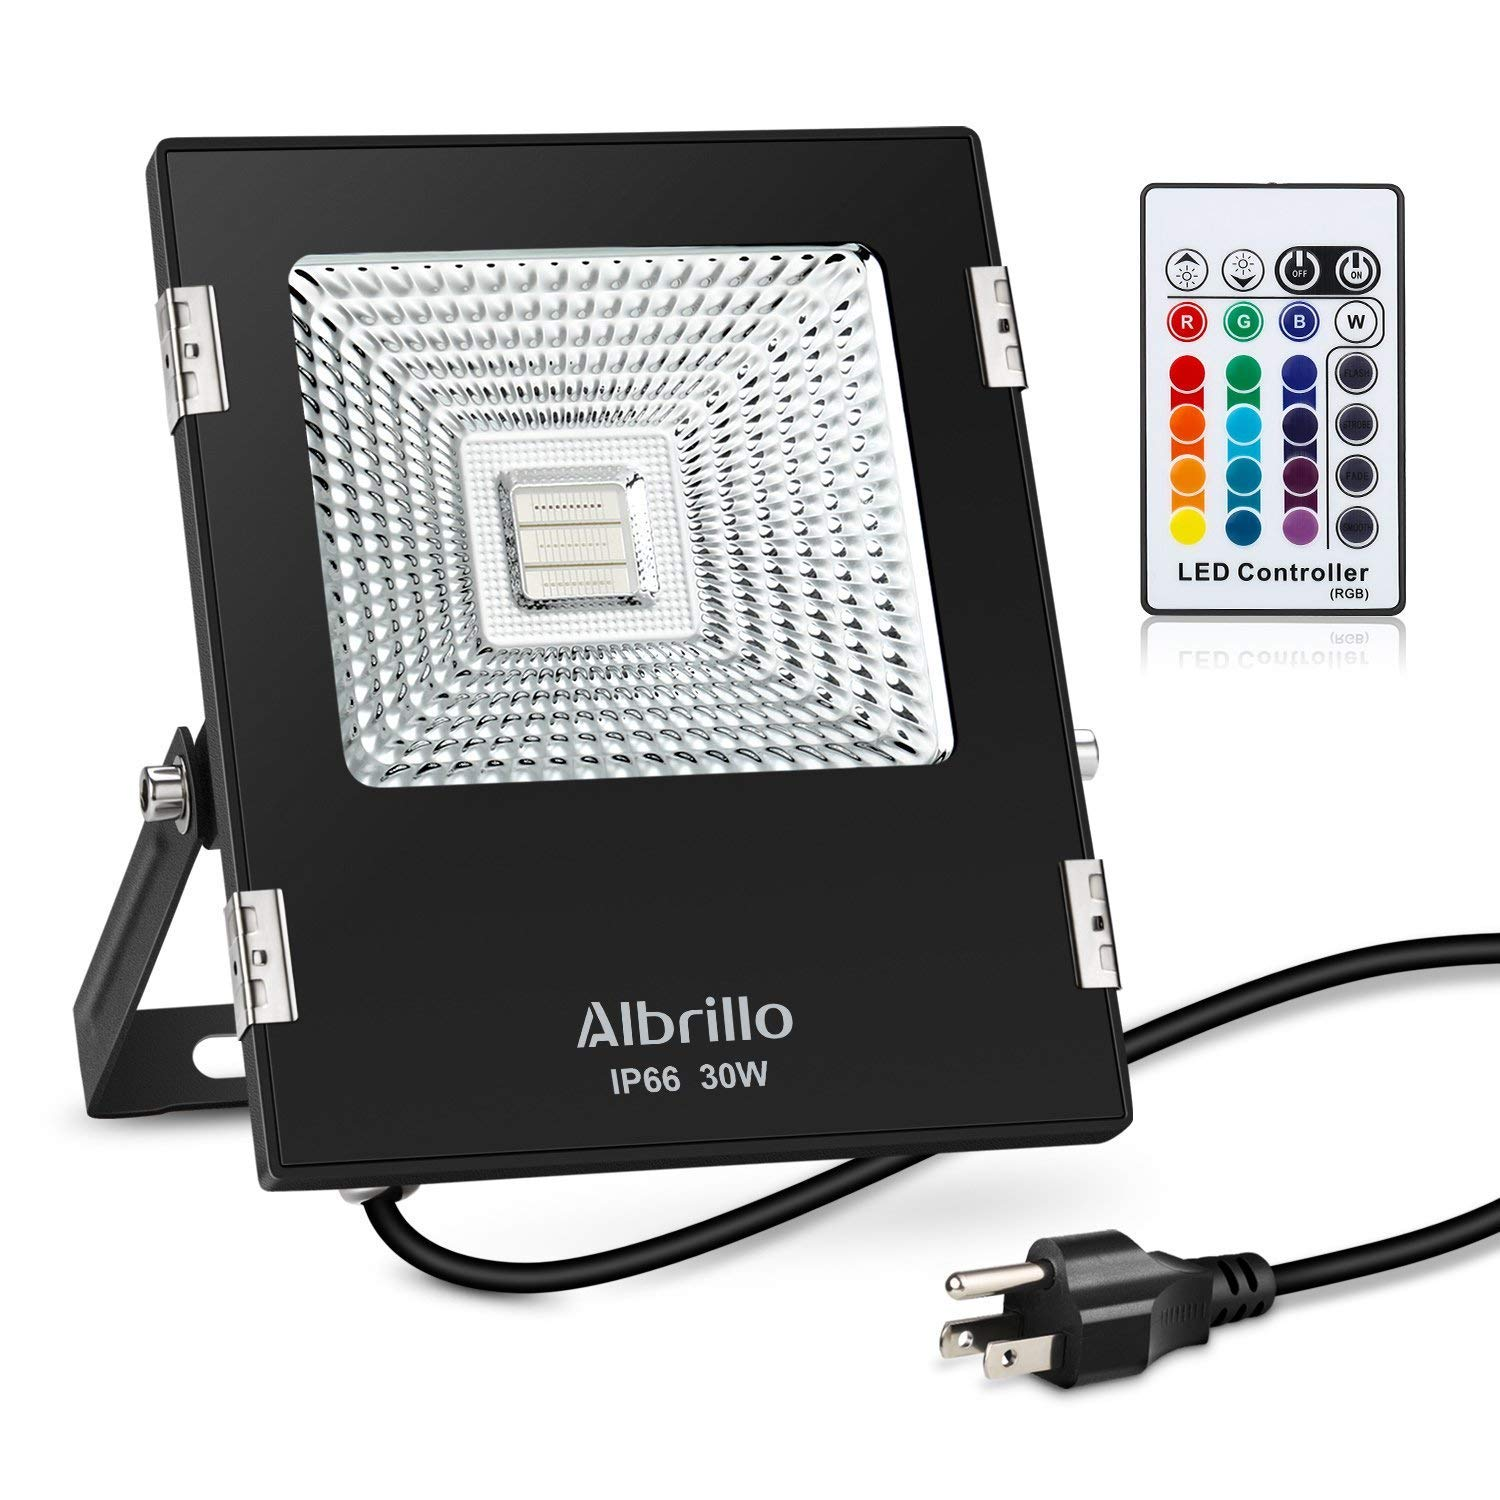 Albrillo 30W RGB Flood Lights Waterproof LED Floodlight with Remote Control and US Plug, 16 Colors and 4 Modes Adjustable Wall Lights